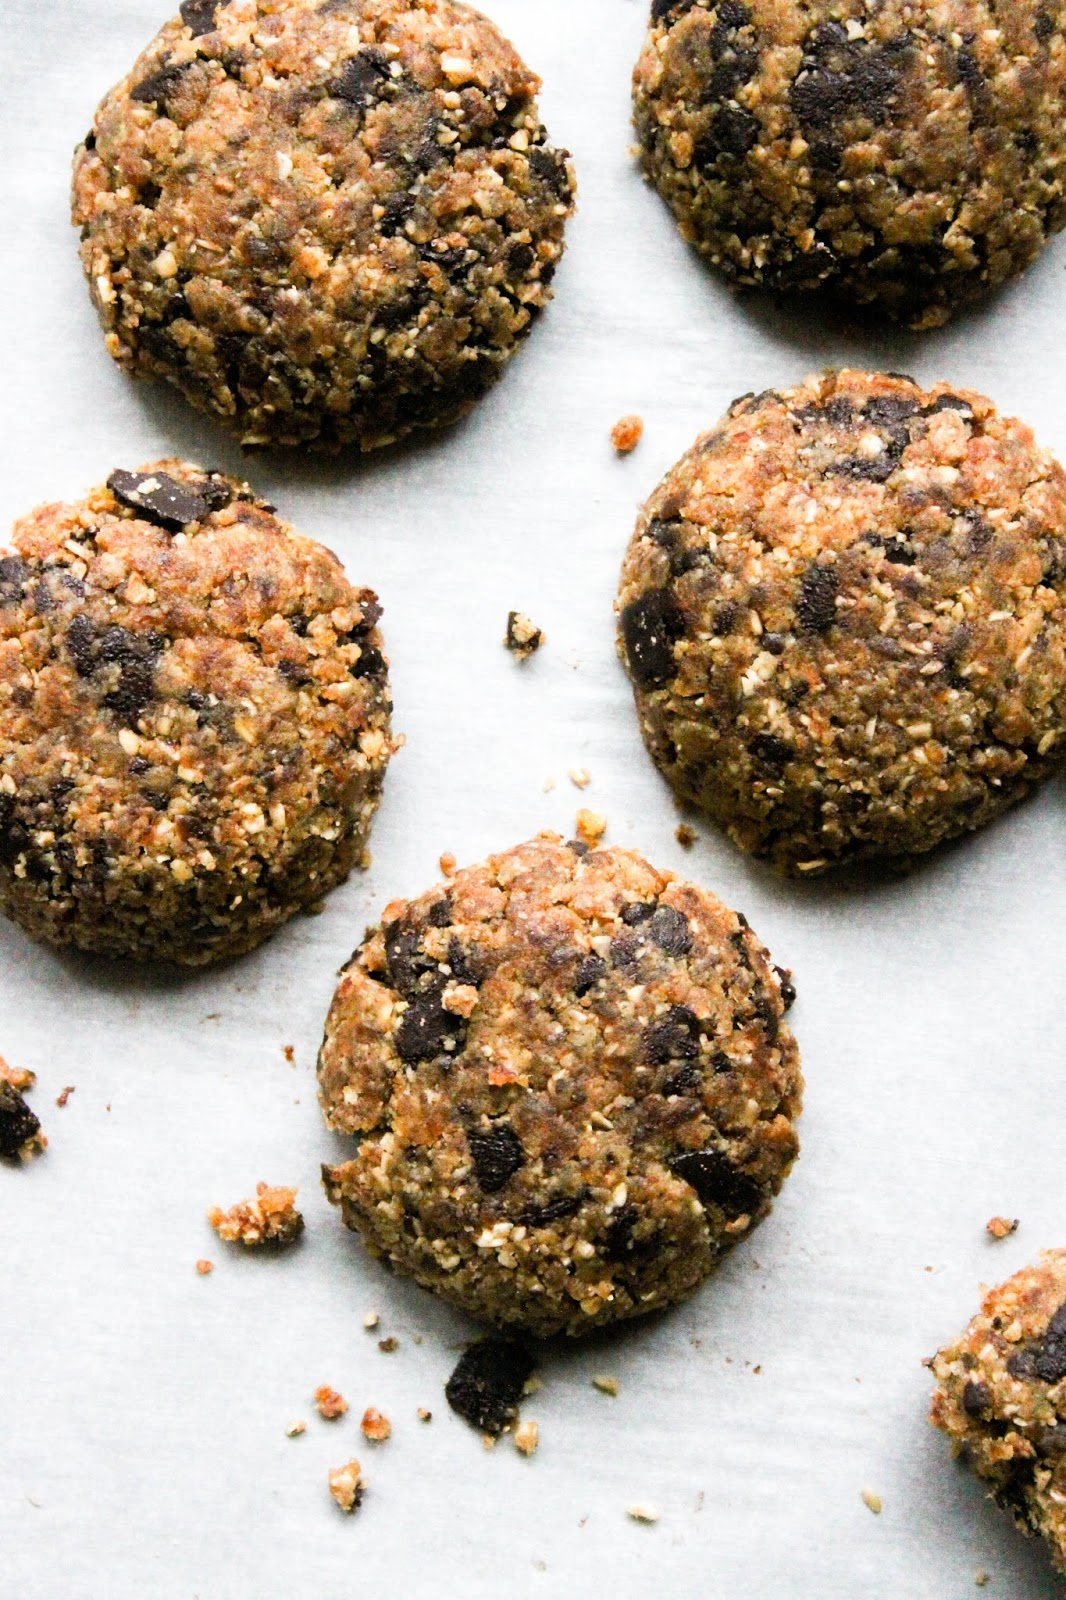 The Great Chocolate Chip Cookie Experiment - NeighborFood